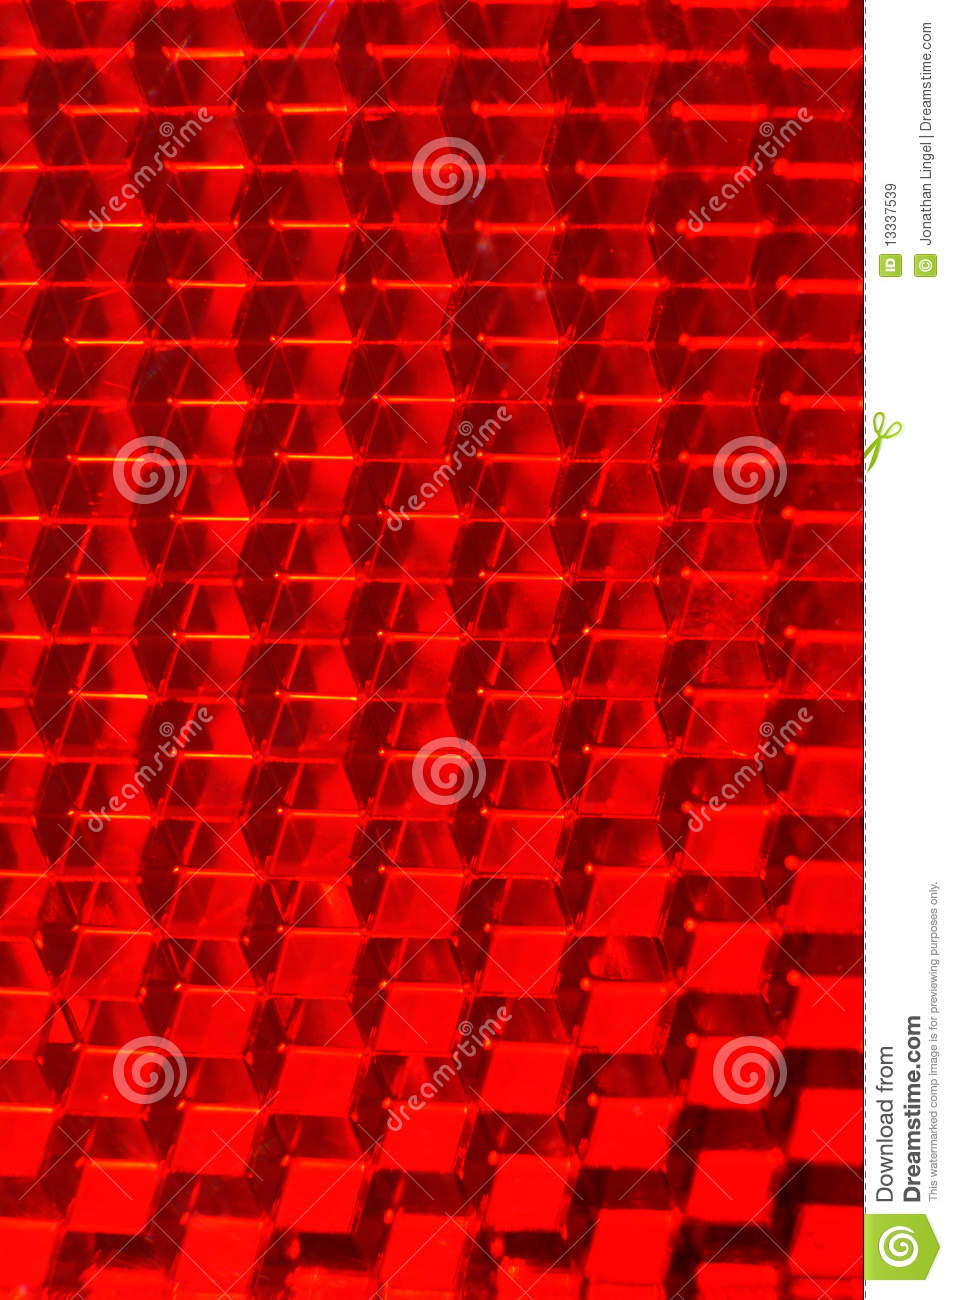 Tail light lens stock image. Image of texture, brake - 13337539 for car lamp texture  55nar